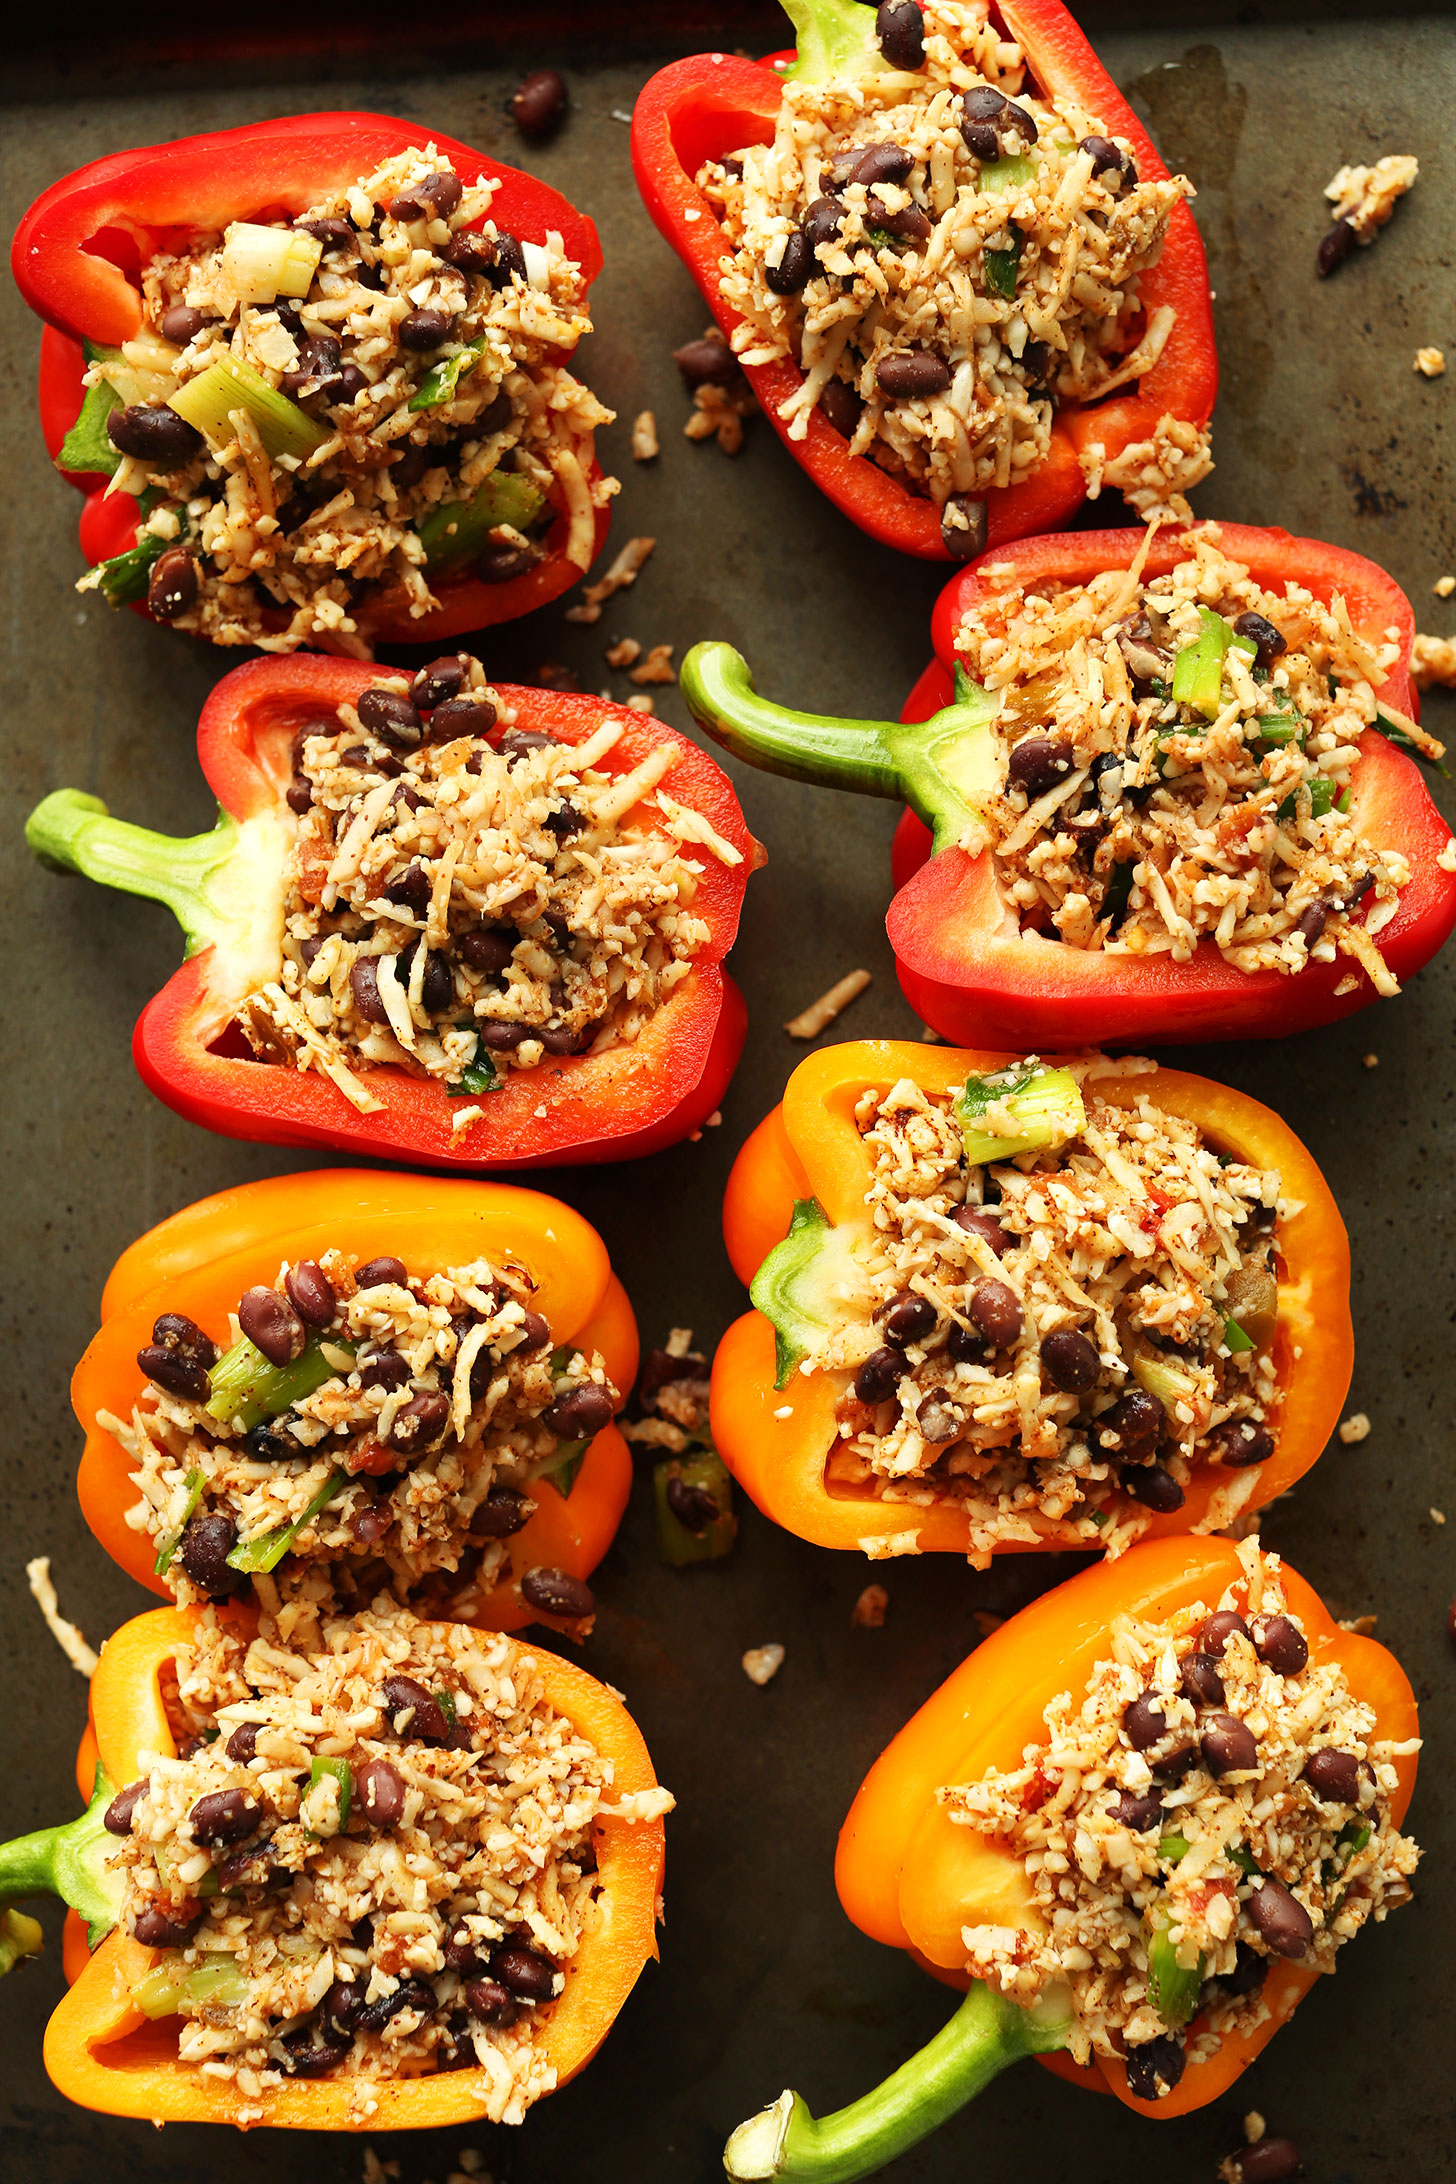 Baking sheet filled with gluten-free vegan Cauliflower Rice Stuffed Peppers